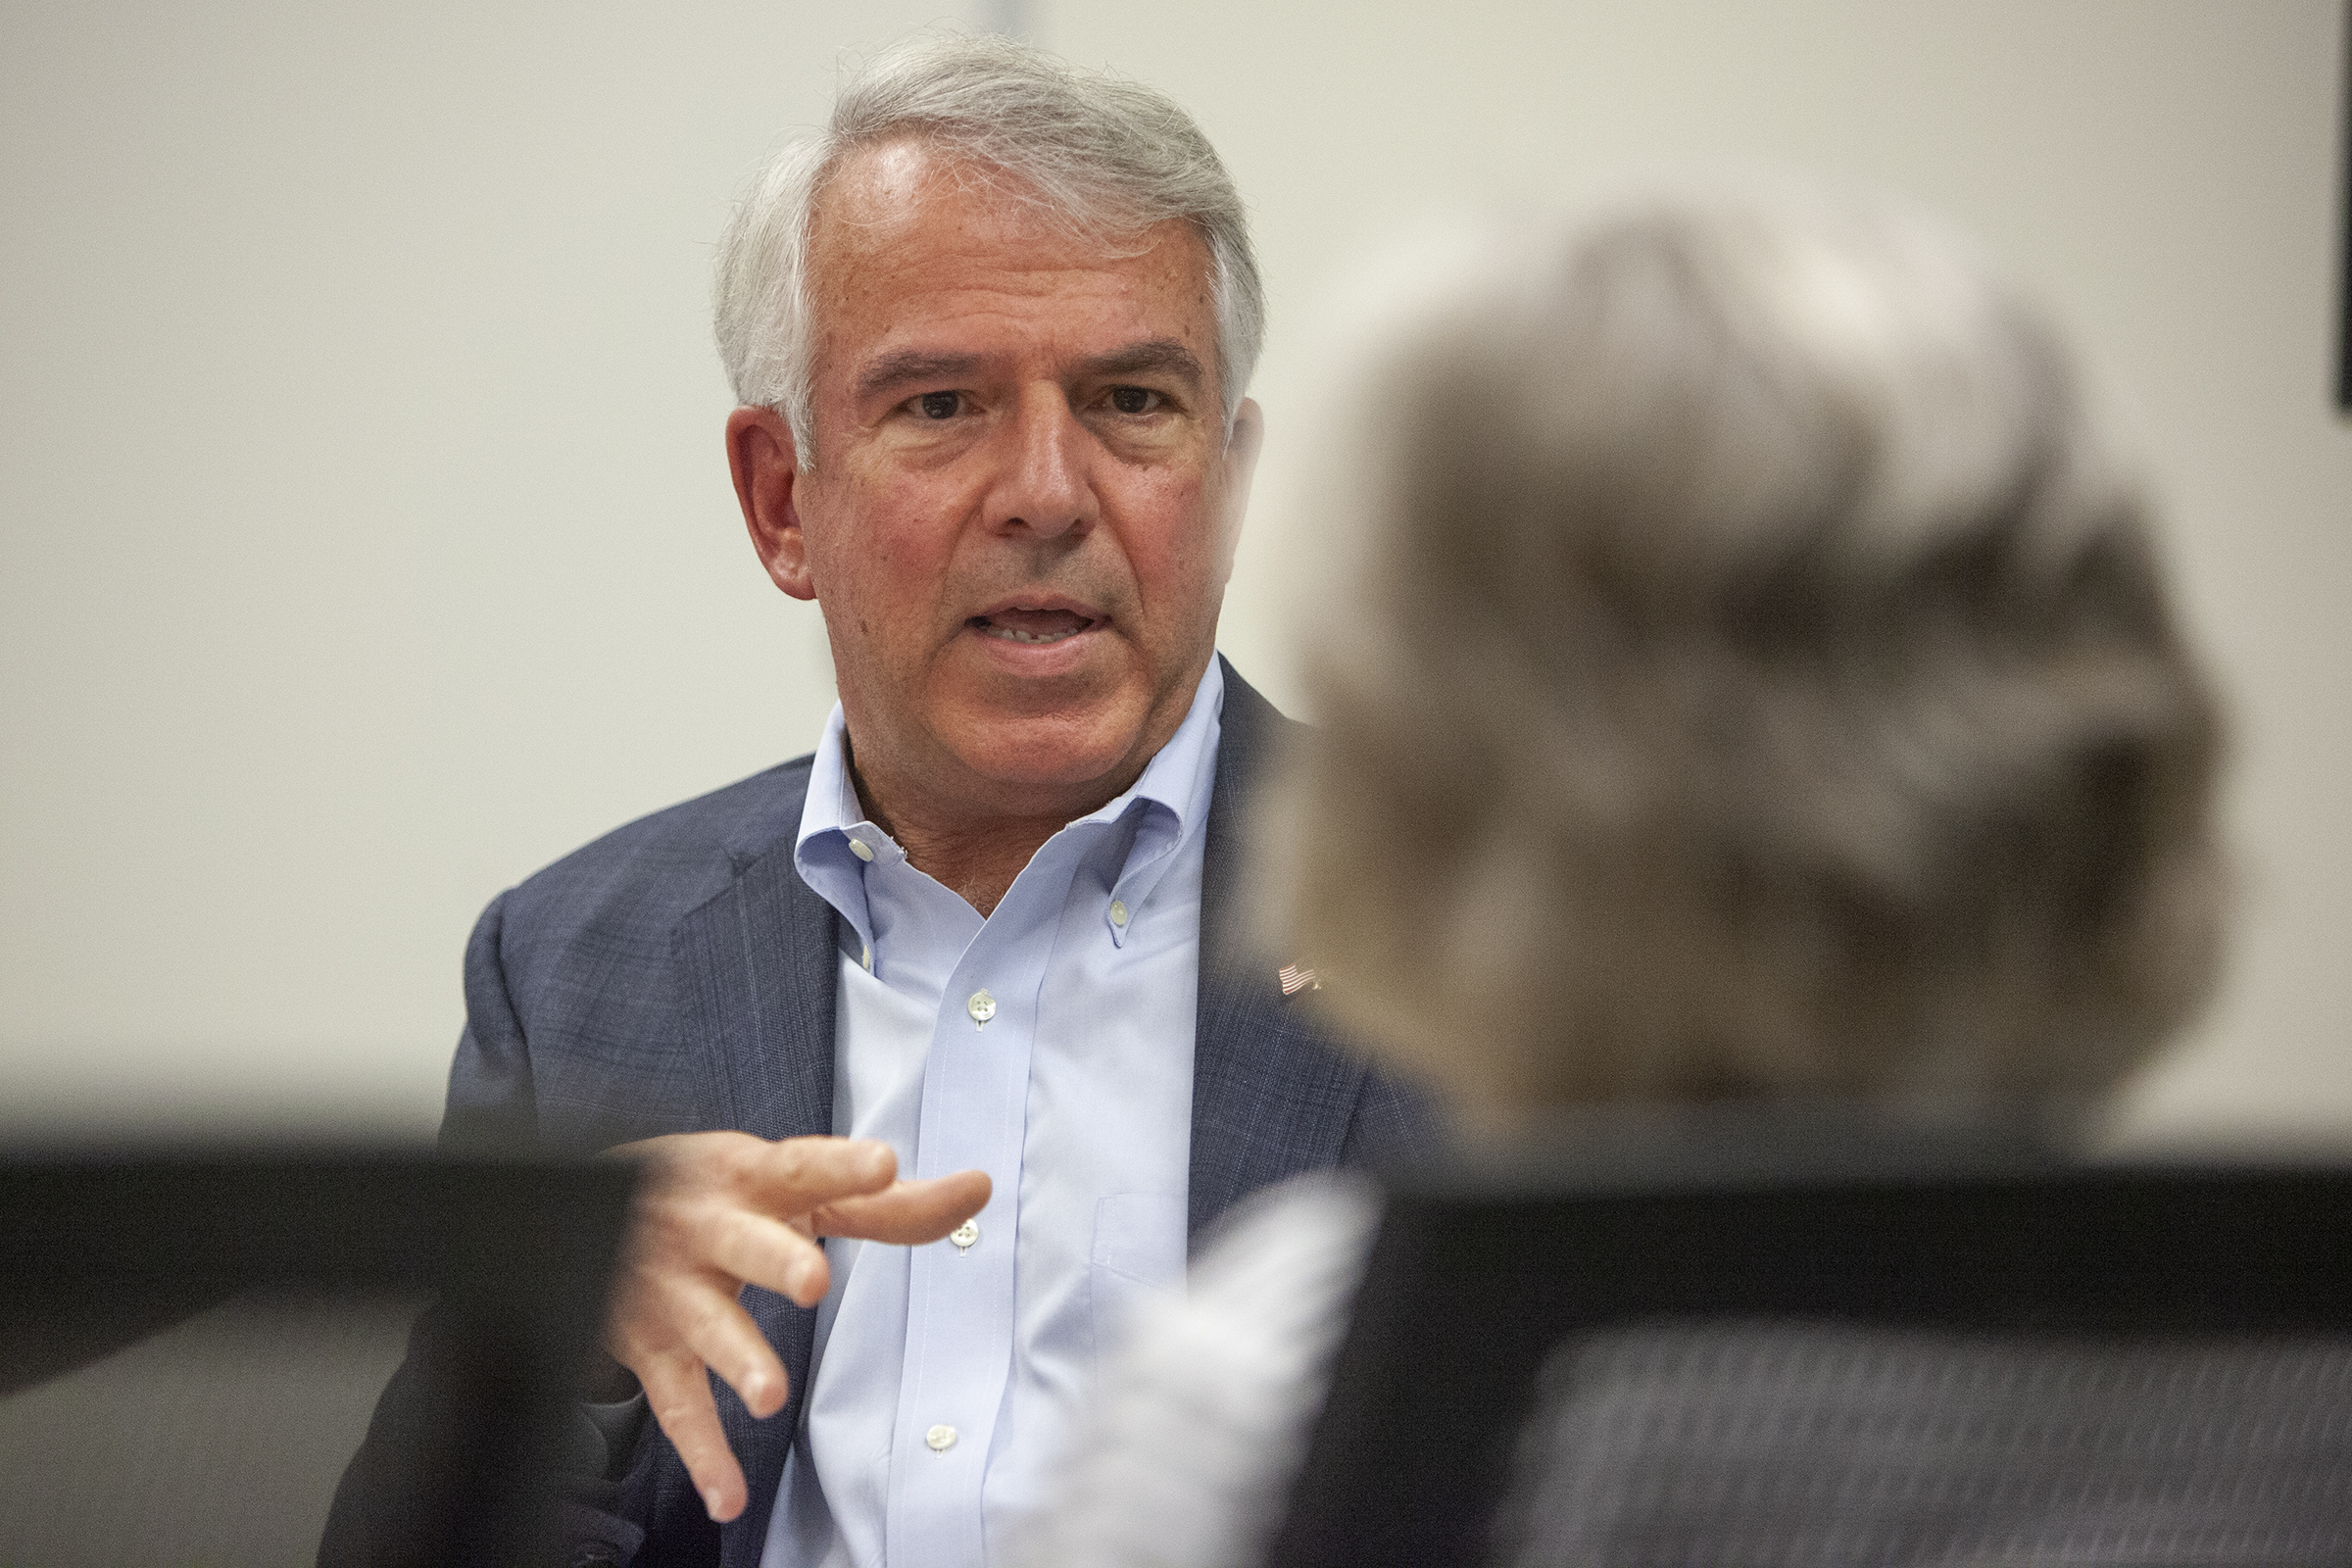 Bob Hugin, Republican nominee for U.S. Senate in New Jersey, meets with reporters and members of the editorial board at the Philadelphia Media Network office on Tuesday, Oct. 09, 2018.